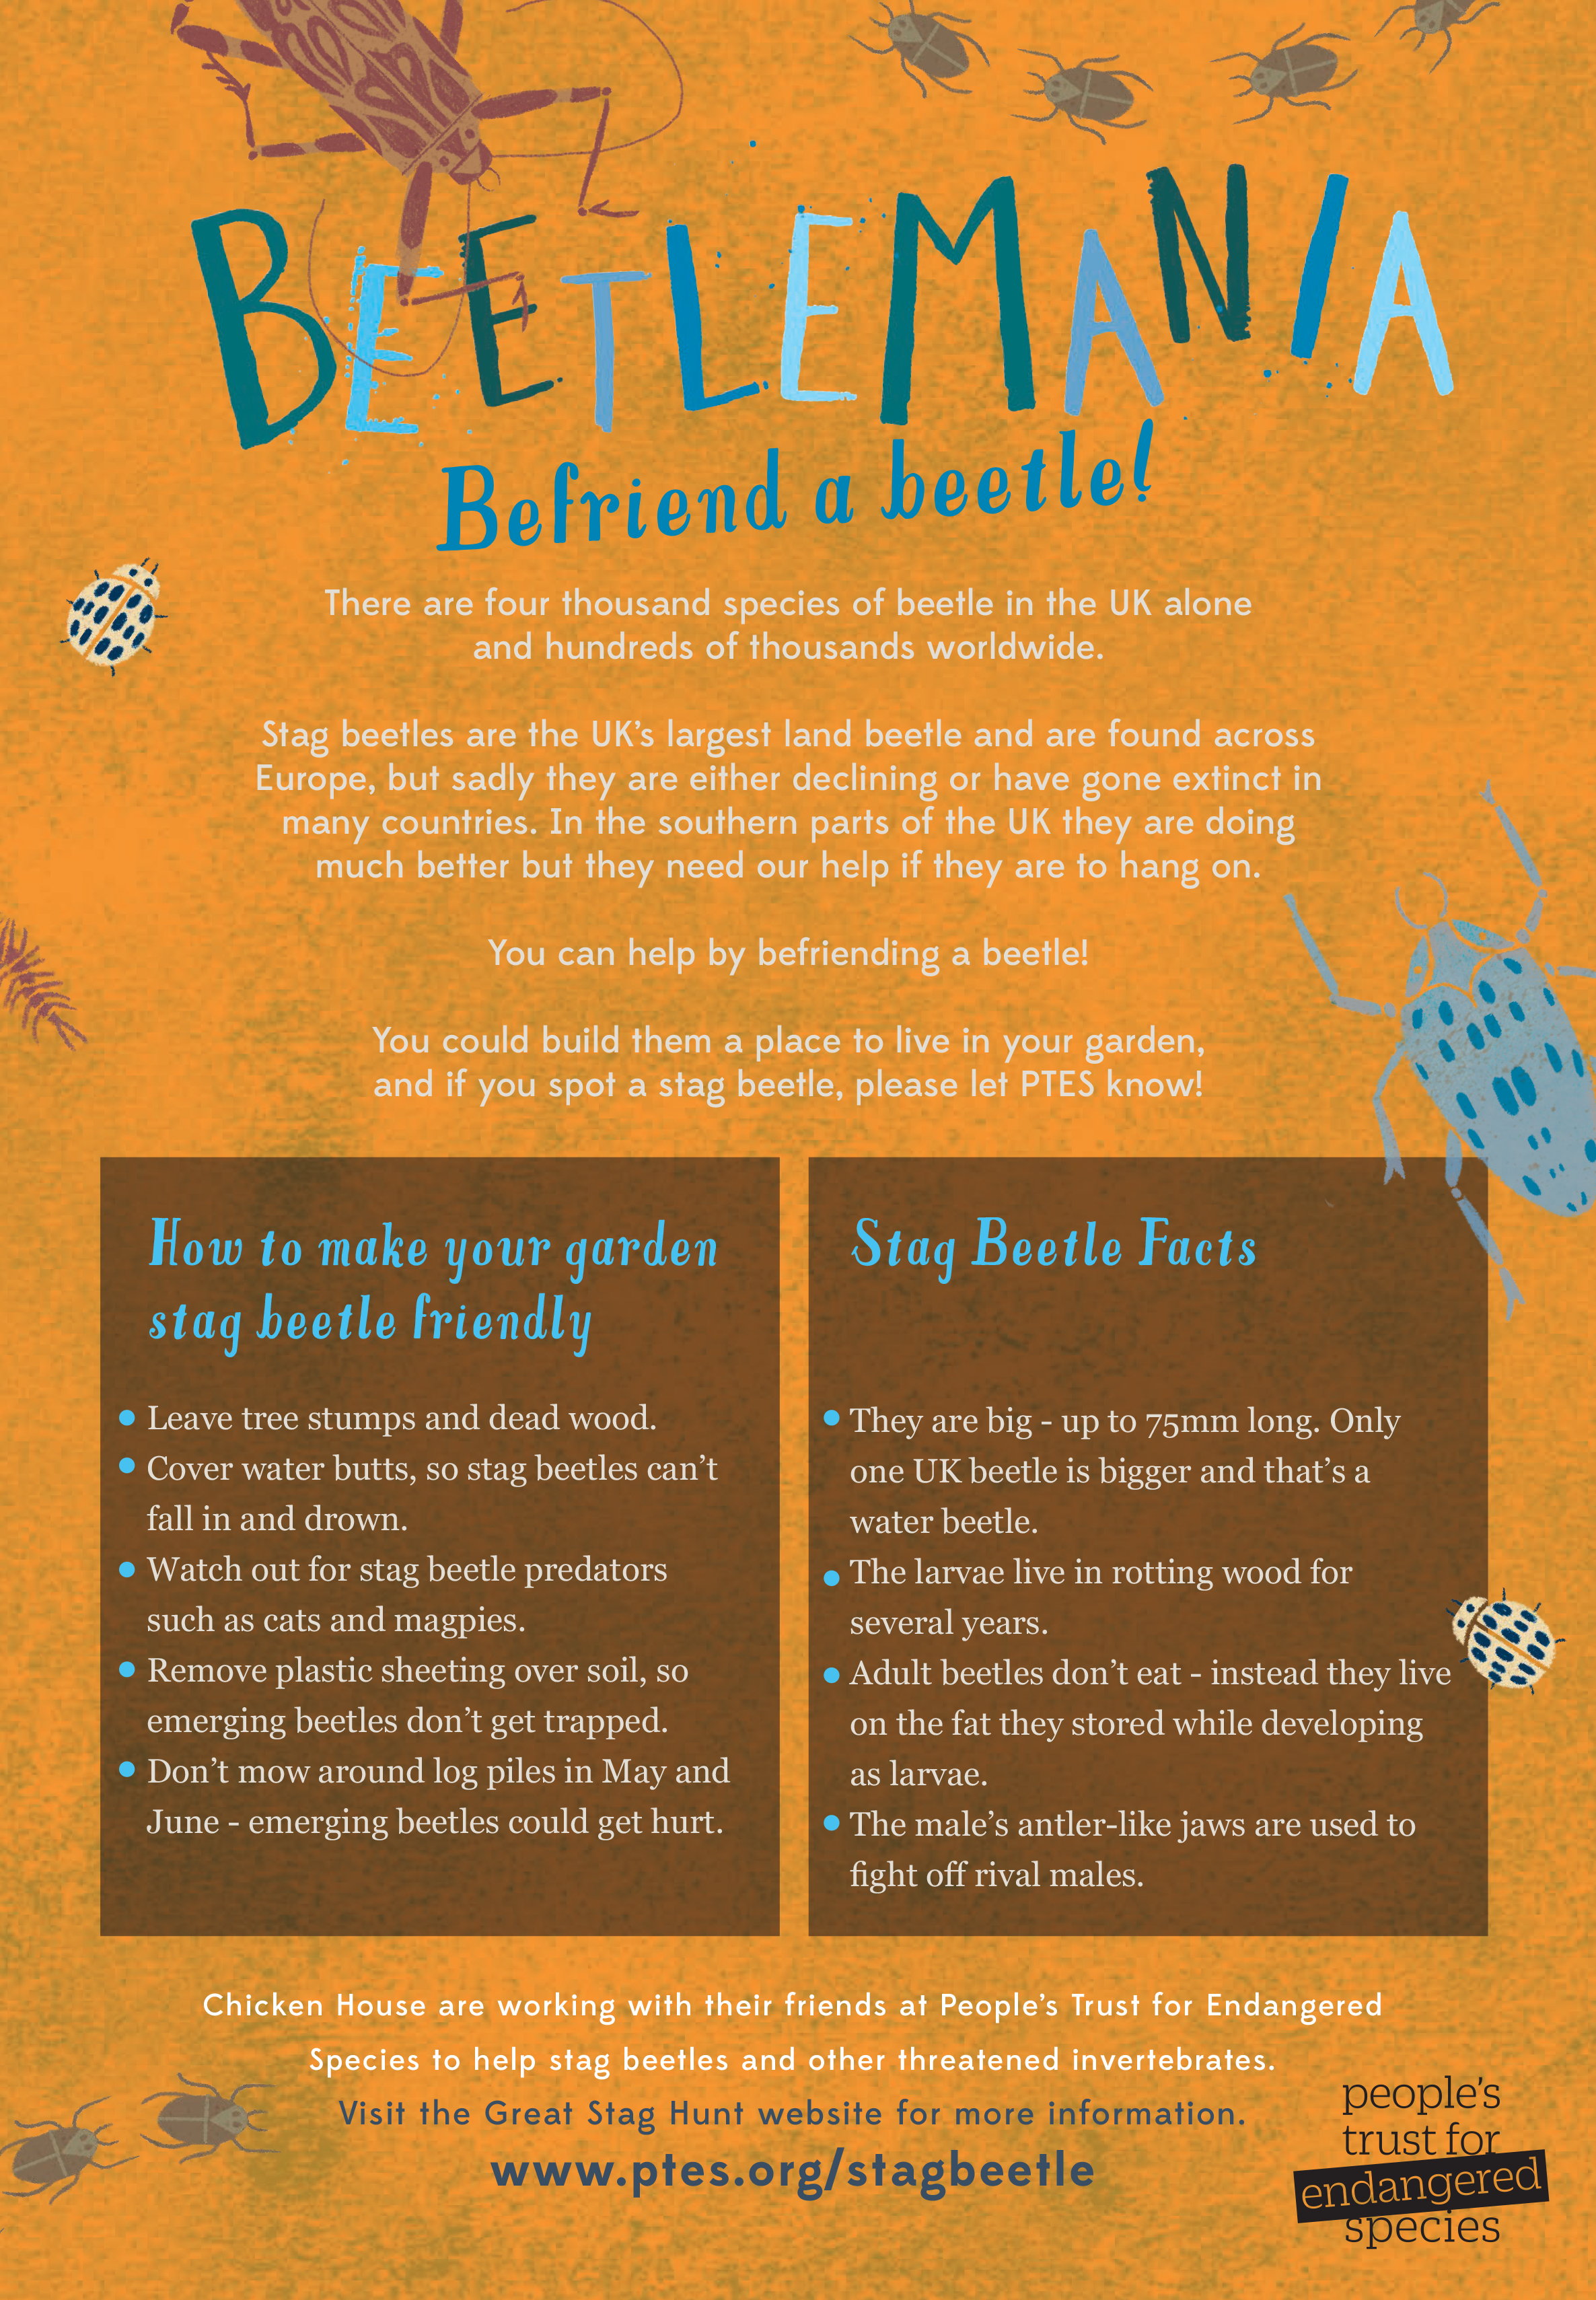 CLICK to learn how to befriend a beetle.